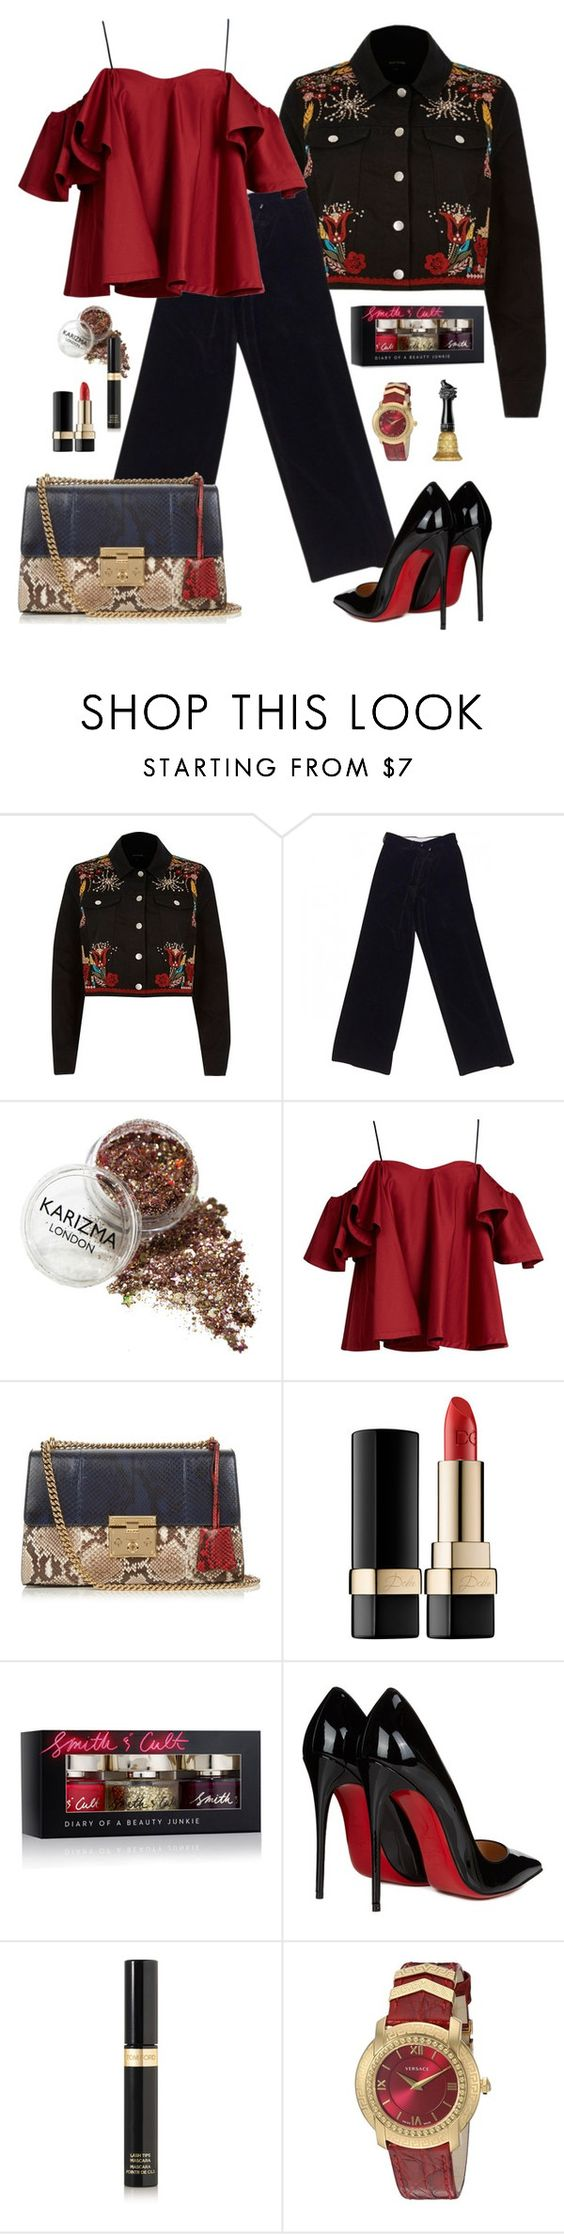 """""""Ready For Anything"""" by beleev ❤ liked on Polyvore featuring River Island, Hermès, Anna October, Gucci, Dolce&Gabbana, Smith & Cult, Christian Louboutin, Tom Ford, Versace and Anna Sui"""